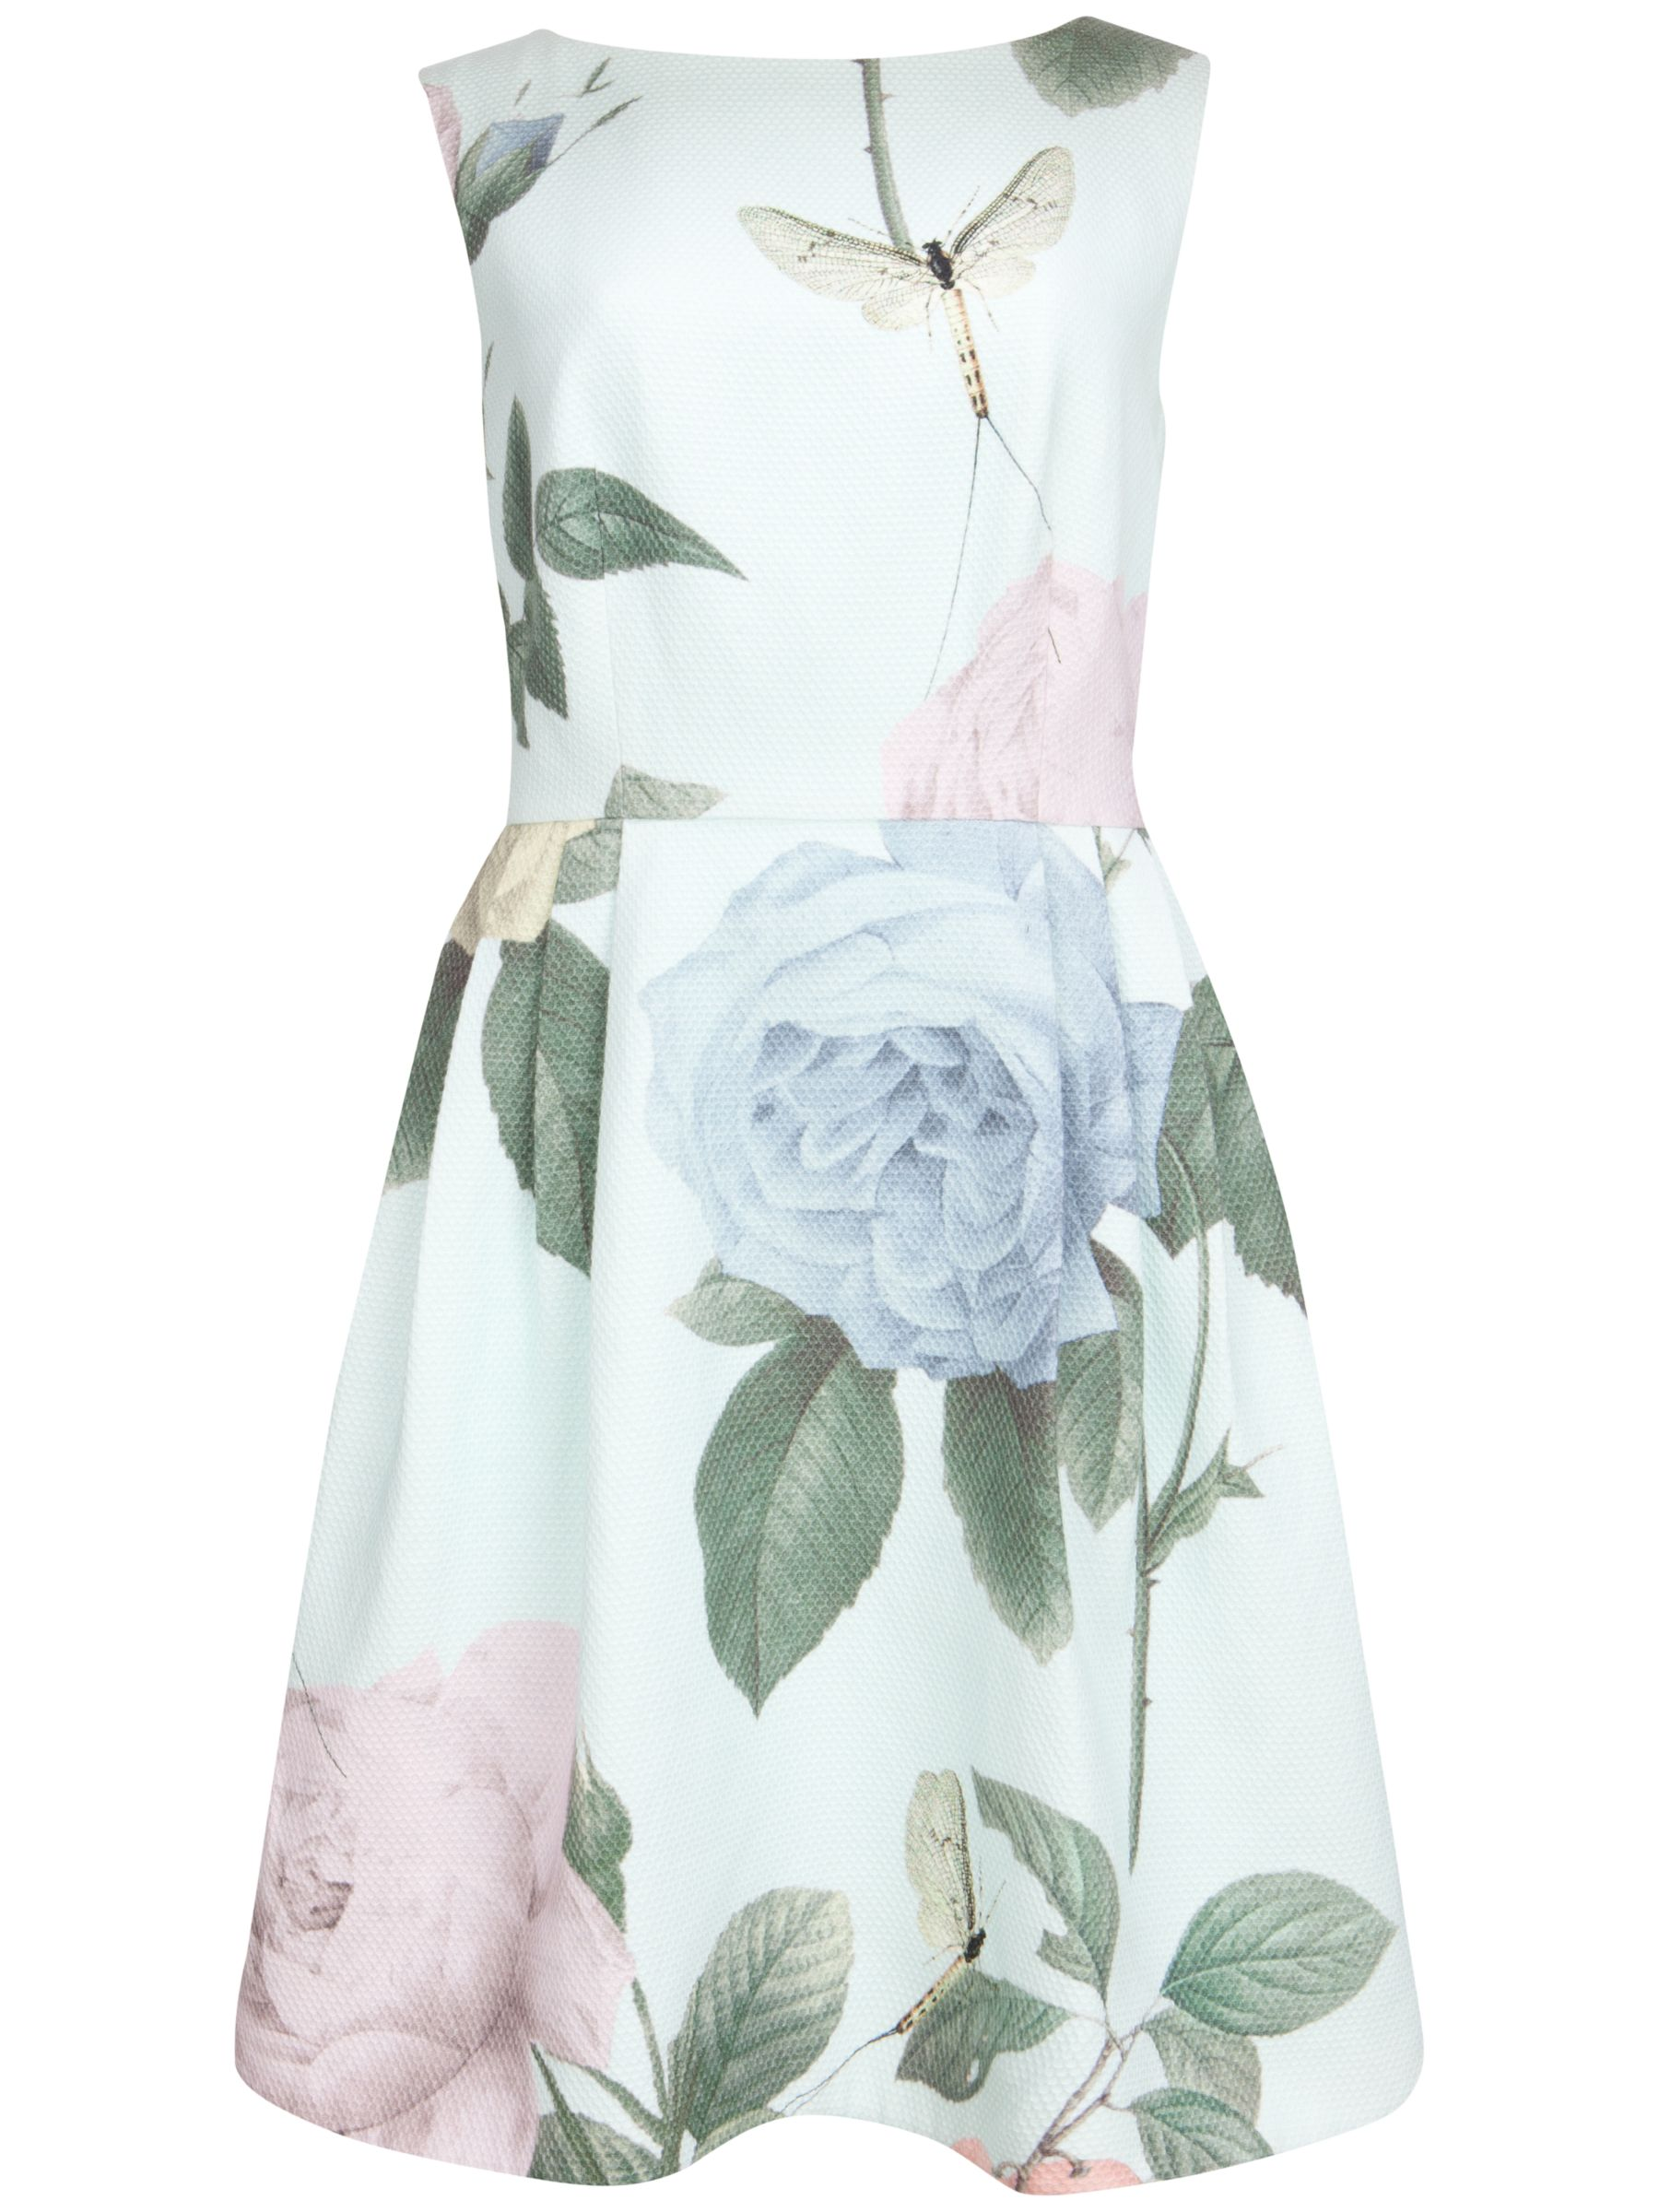 ted baker rose print tulip dress mint, ted, baker, rose, print, tulip, dress, mint, ted baker, 5|1|3|2|4|0, women, womens dresses, fashion magazine, womenswear, men, brands l-z, 1869582